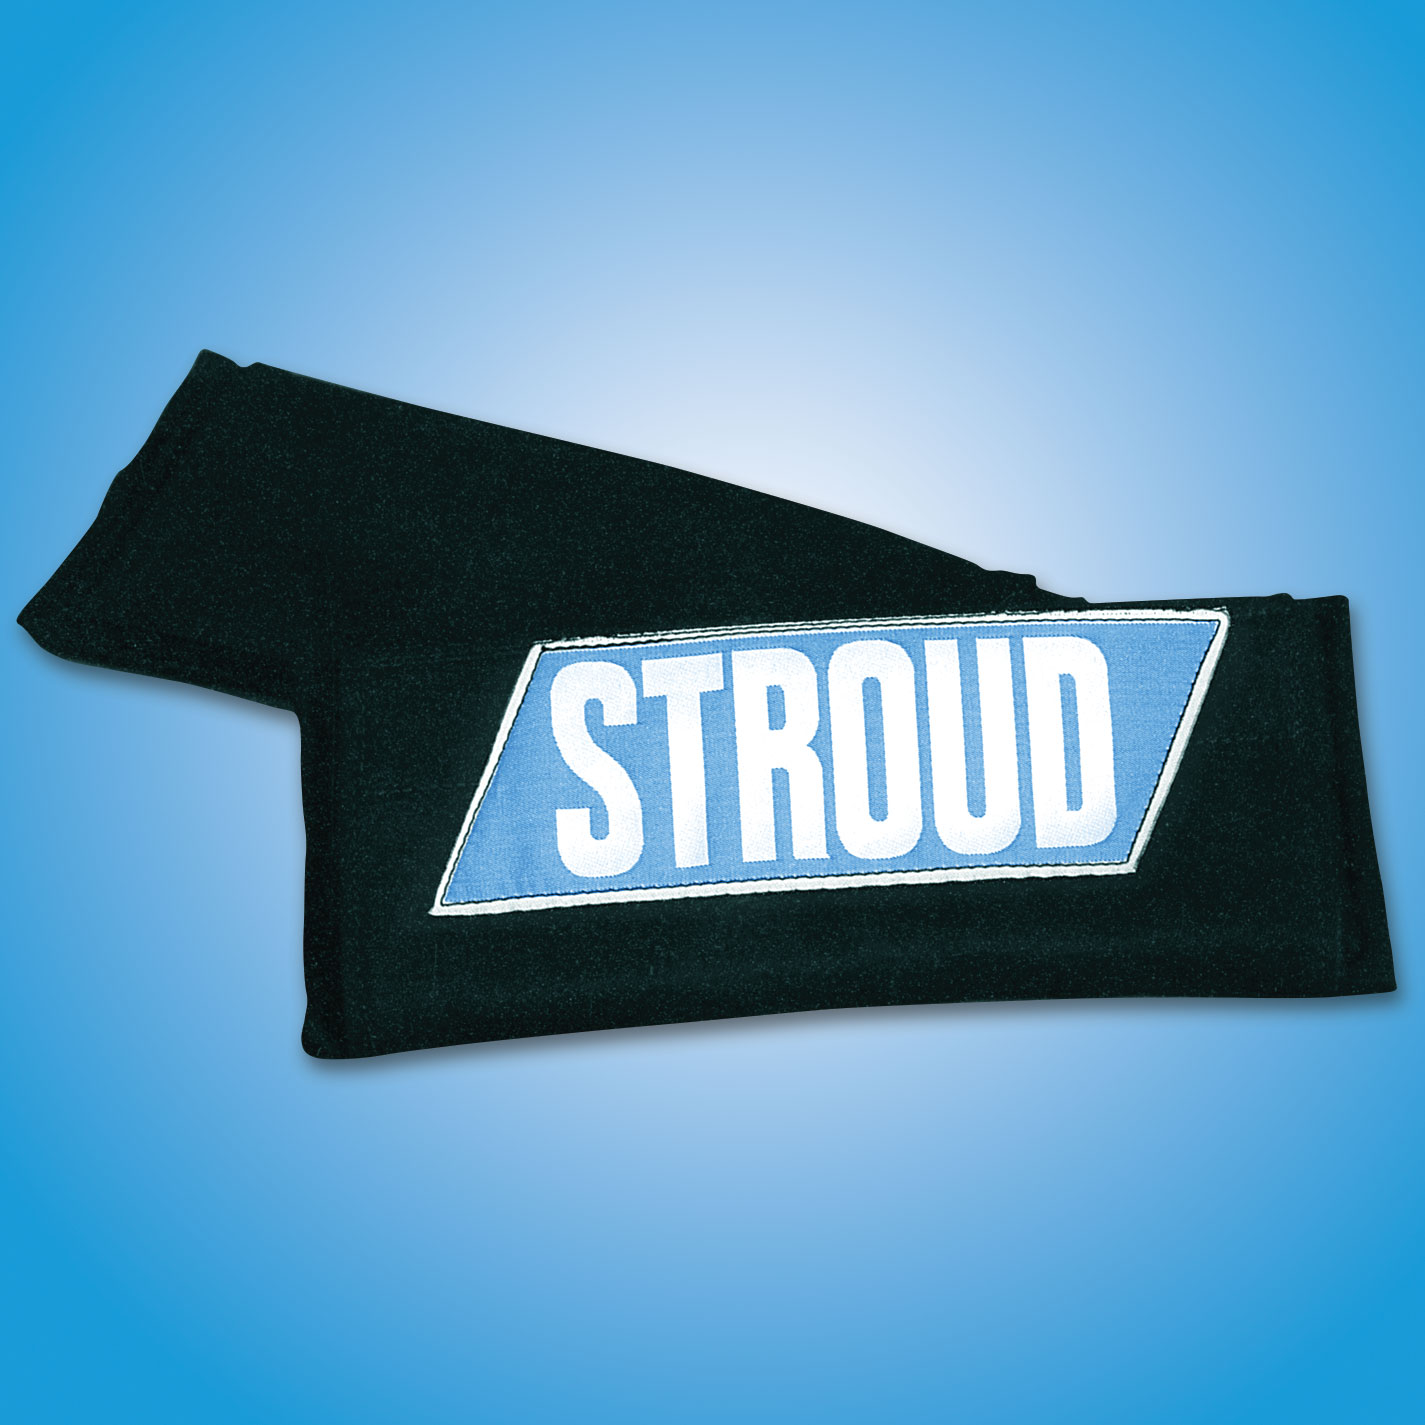 Shoulder Pads   Tired of getting rubbed raw from your belts? Use a set of Stroud Shoulder Pads. Easy to remove for cleaning.  Part #900 — $52